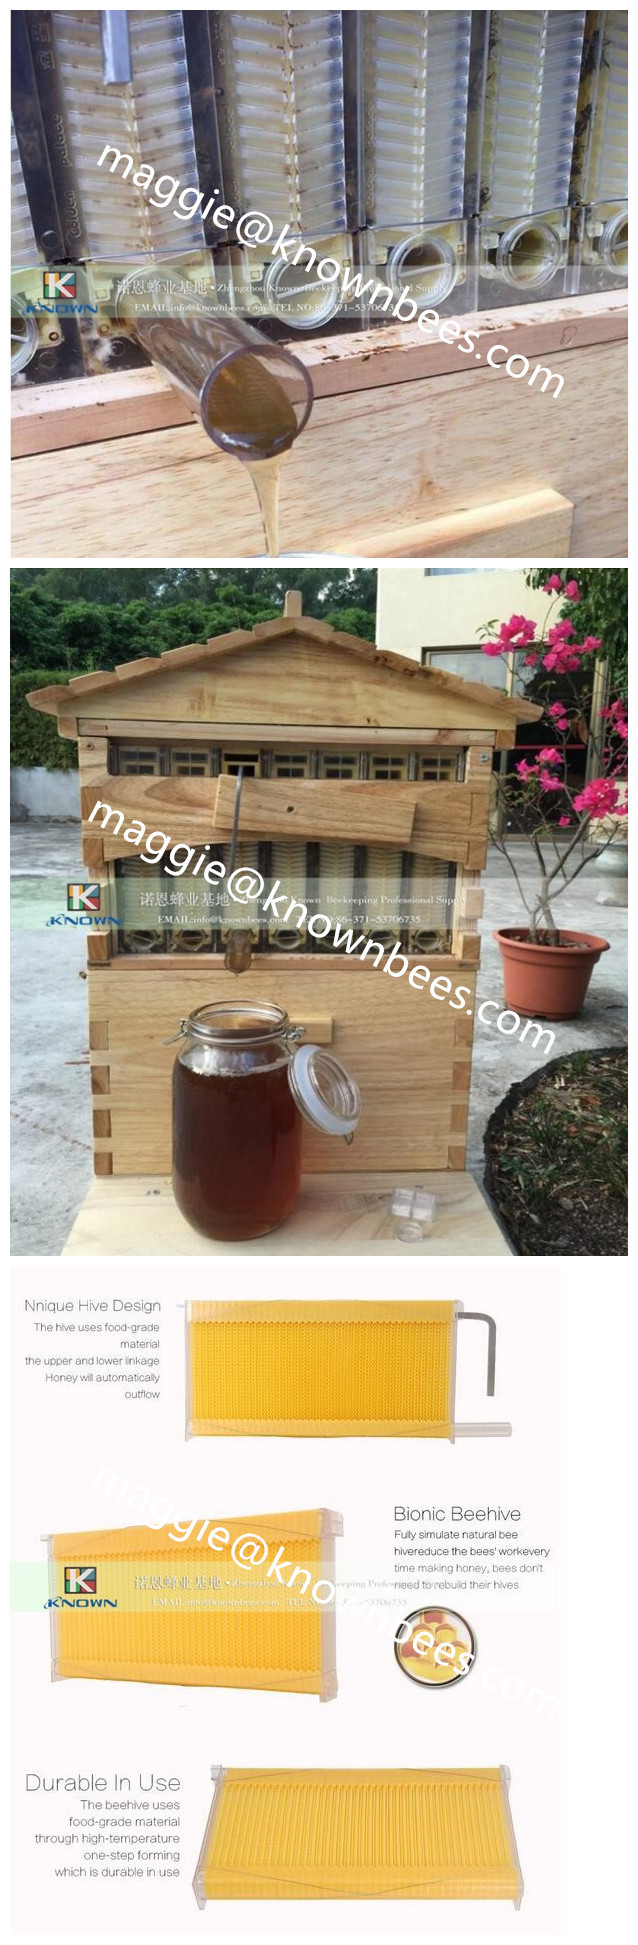 New style flow hive for easier honey harvesting